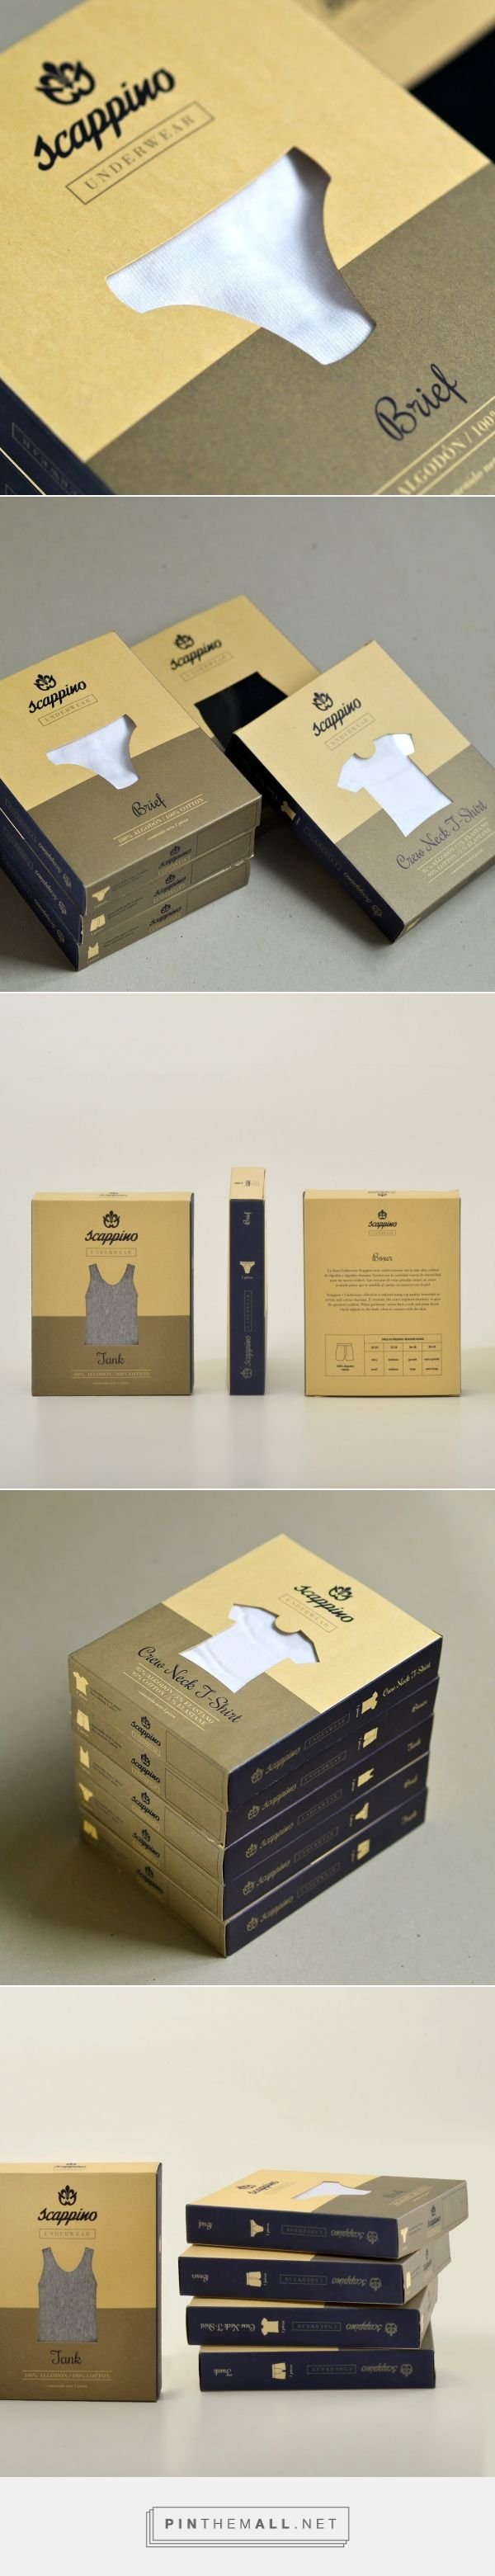 Scappino Underwear Packaging System design by Due Punti D-Sign - http://www.packagingoftheworld.com/2017/03/scappino-underwear-packaging-system.html